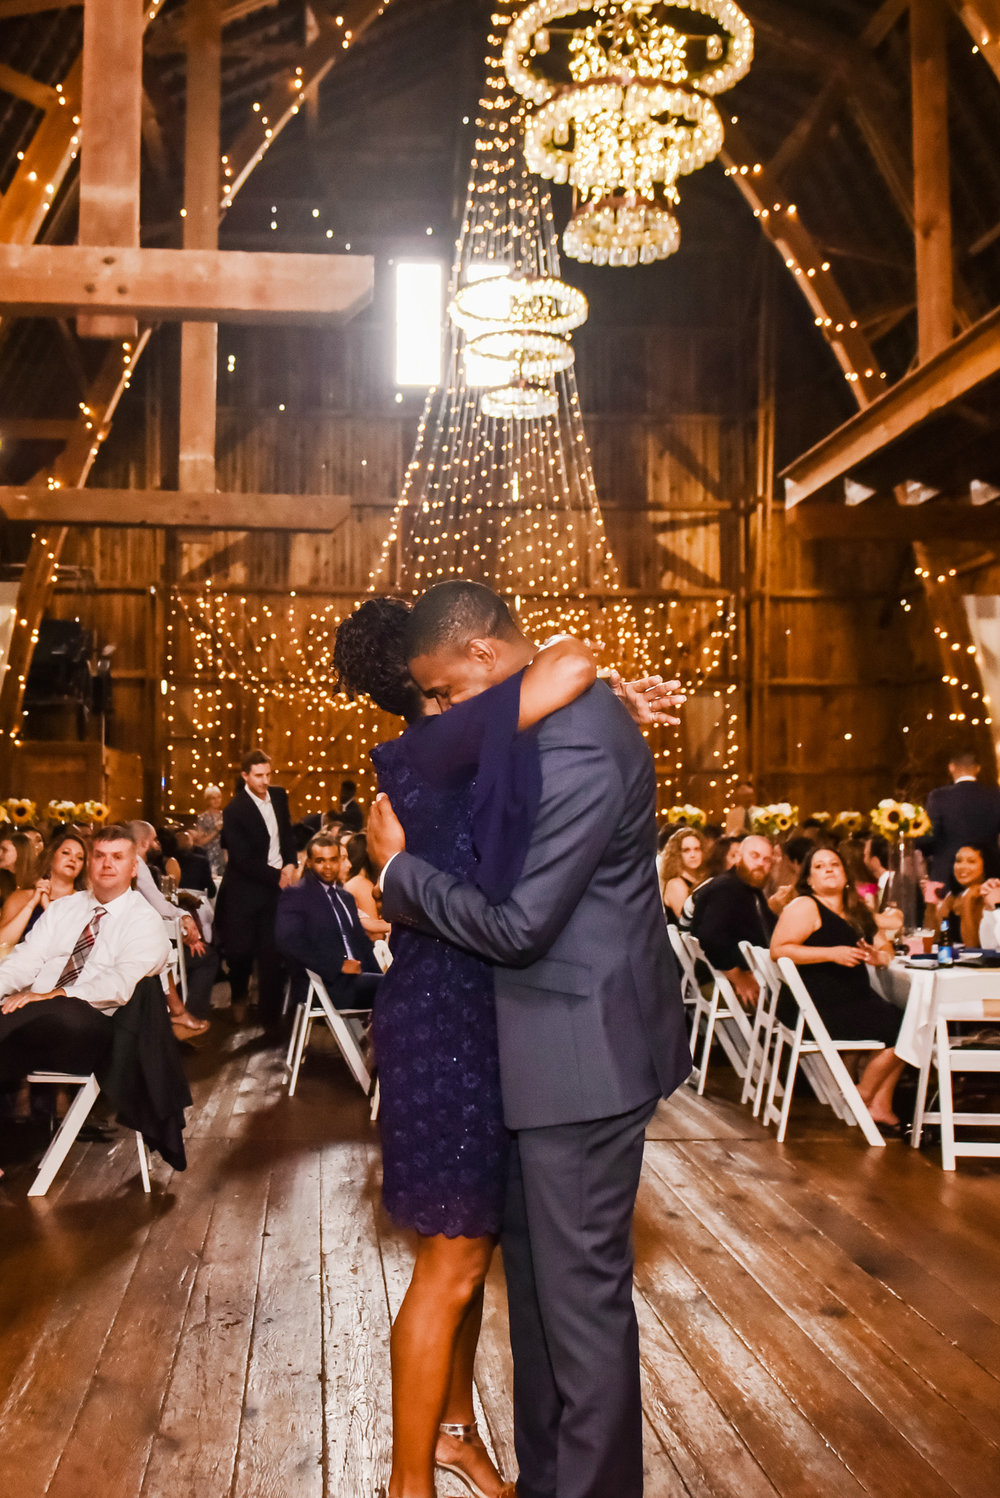 Cobblestone_Wedding_Barn_Rochester_Wedding_JILL_STUDIO_Rochester_NY_Photographer_DSC_7768.jpg